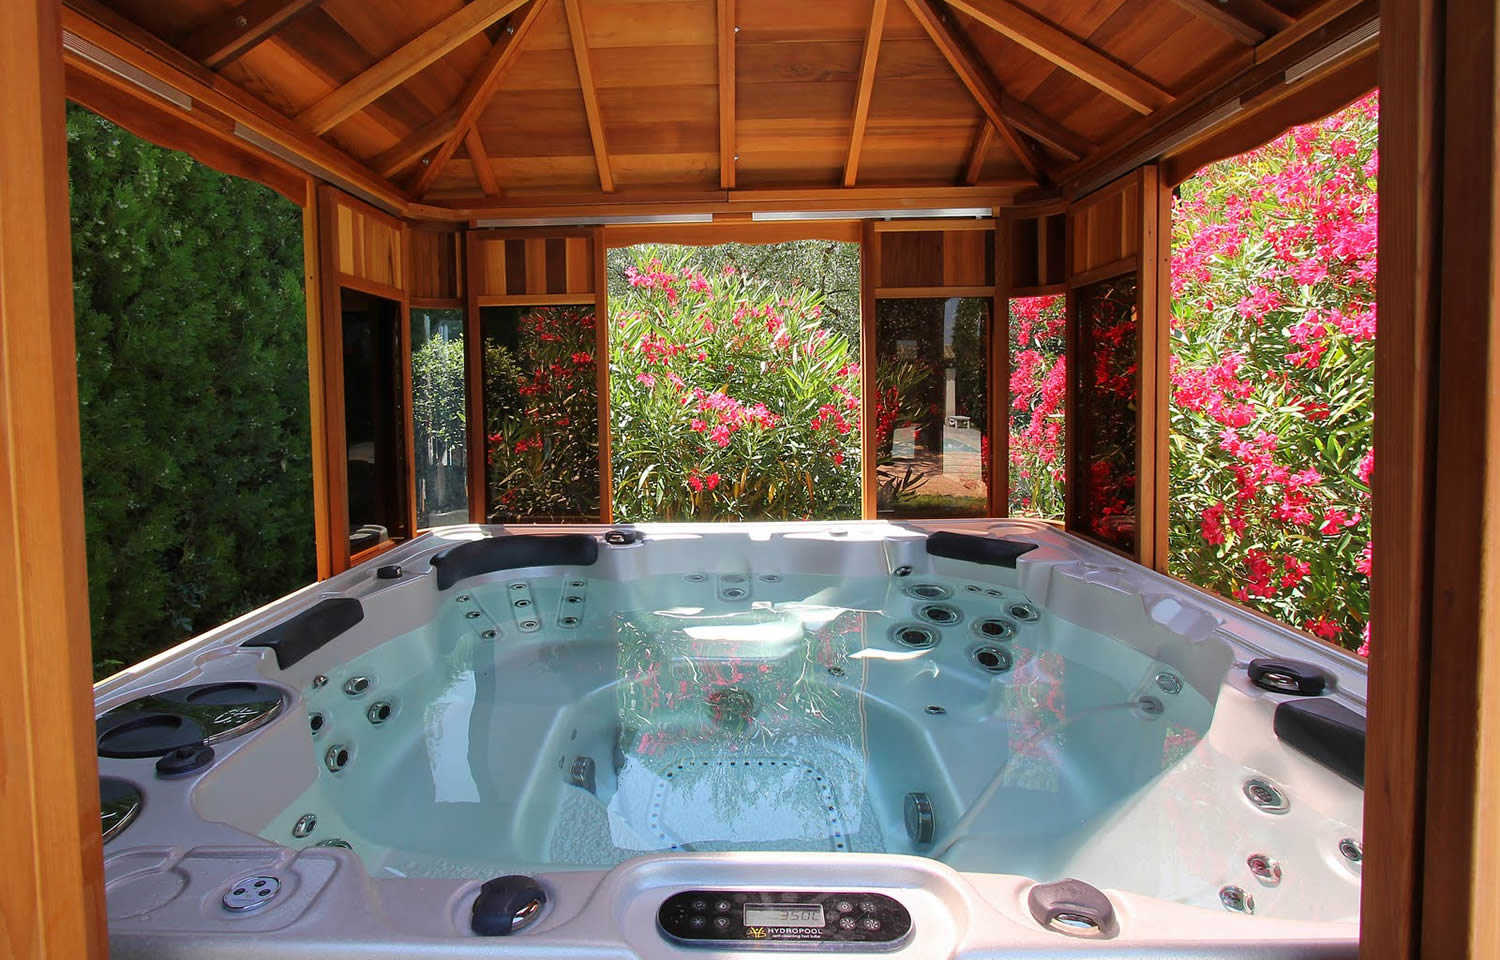 Pool spas hartlepool no 1 hot tubs swim spas supplier for Spa exterieur couvert